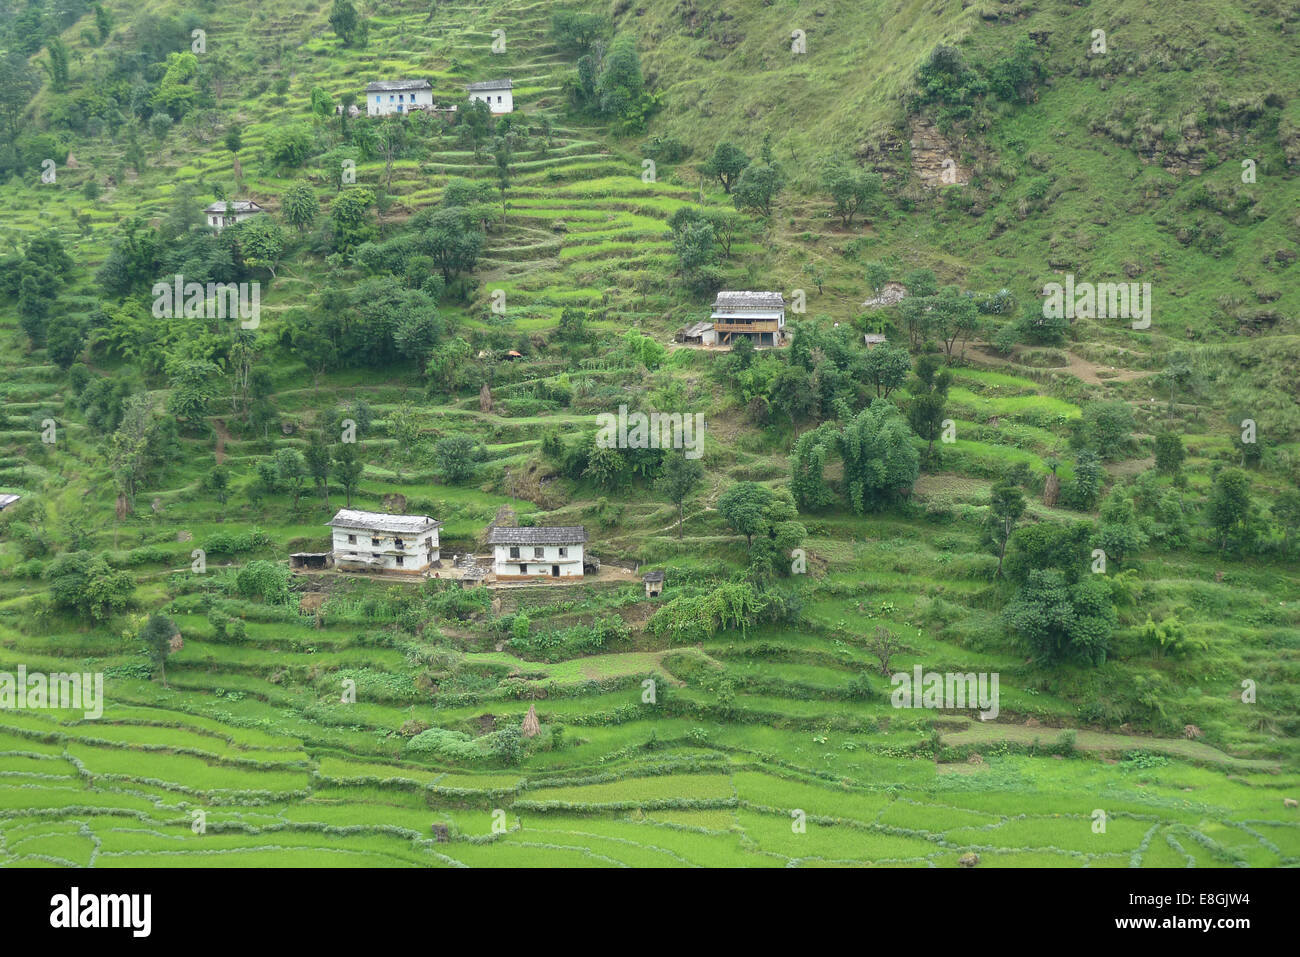 Scattered houses on hill - Stock Image